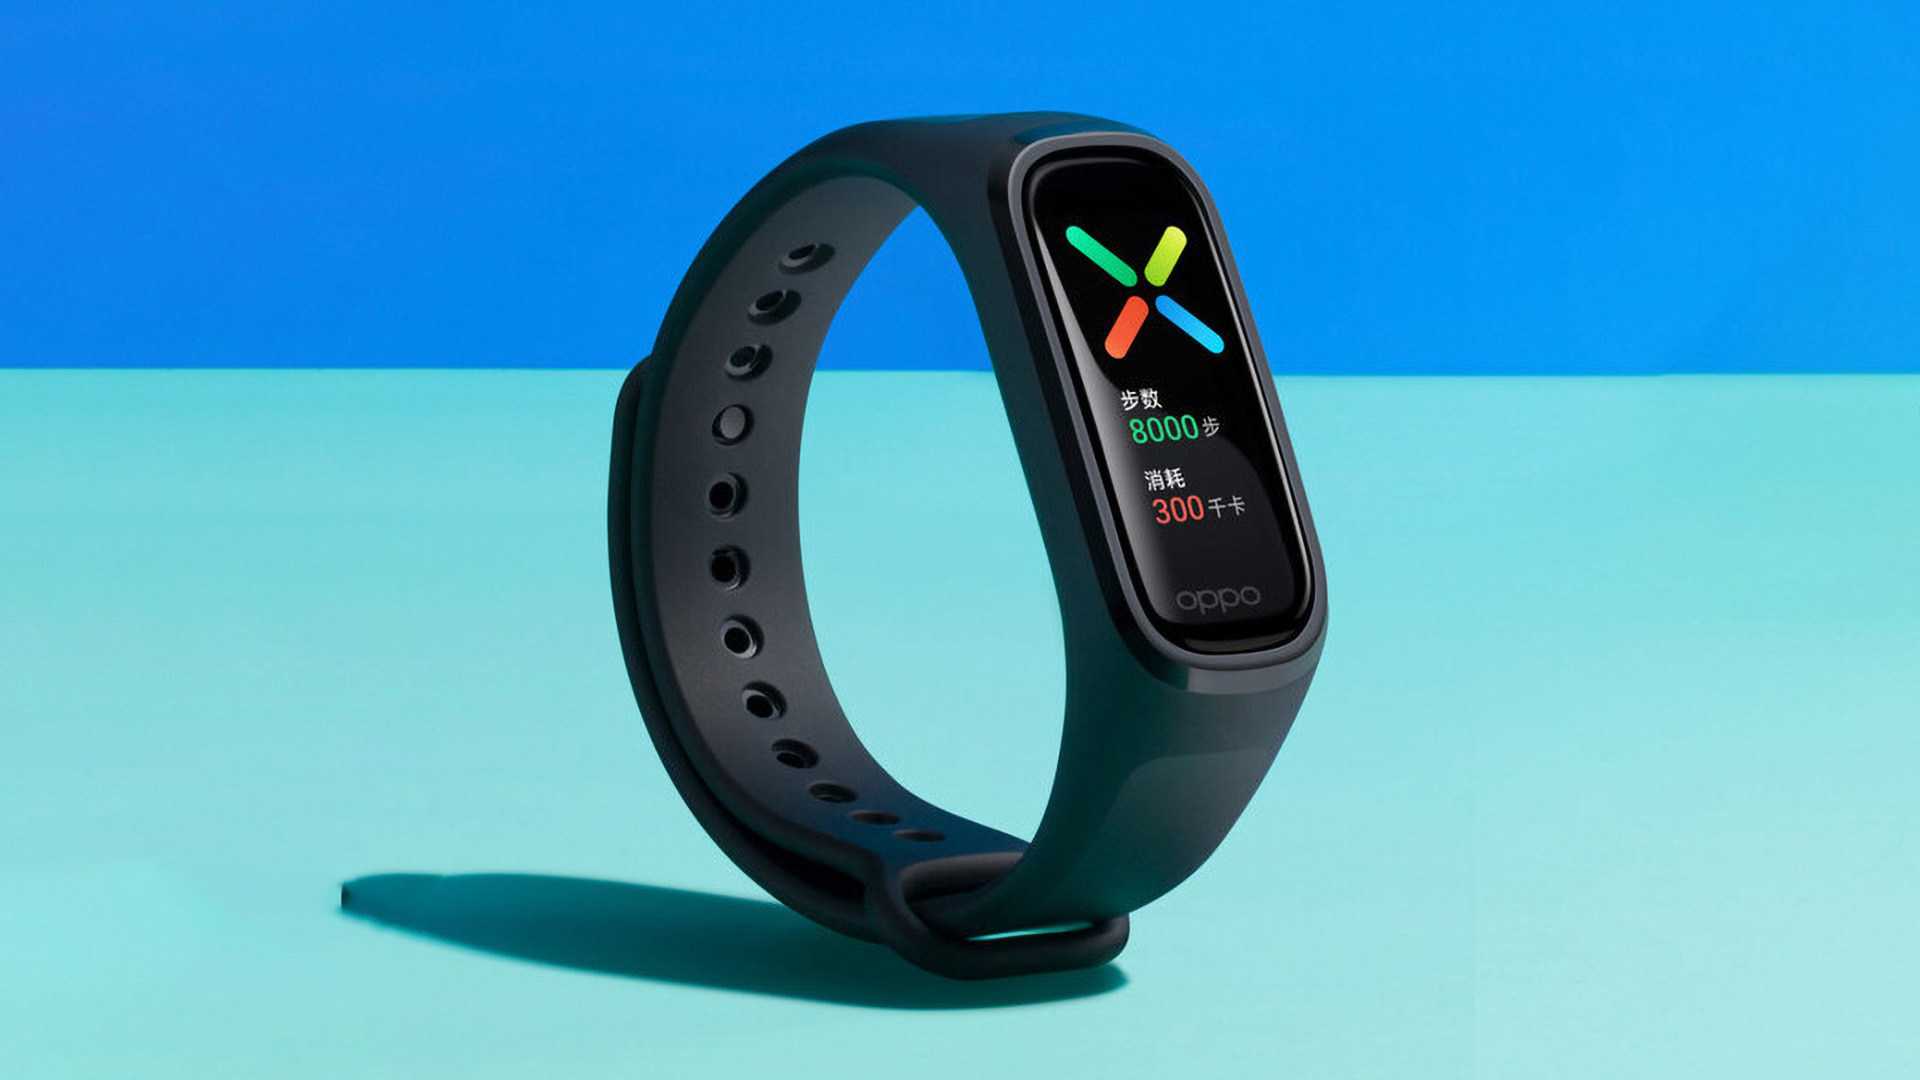 Uhr, Wearables, Fitness-Tracker, Oppo, Fitness-Band, Armband, Smartband, Oppo Band Sport